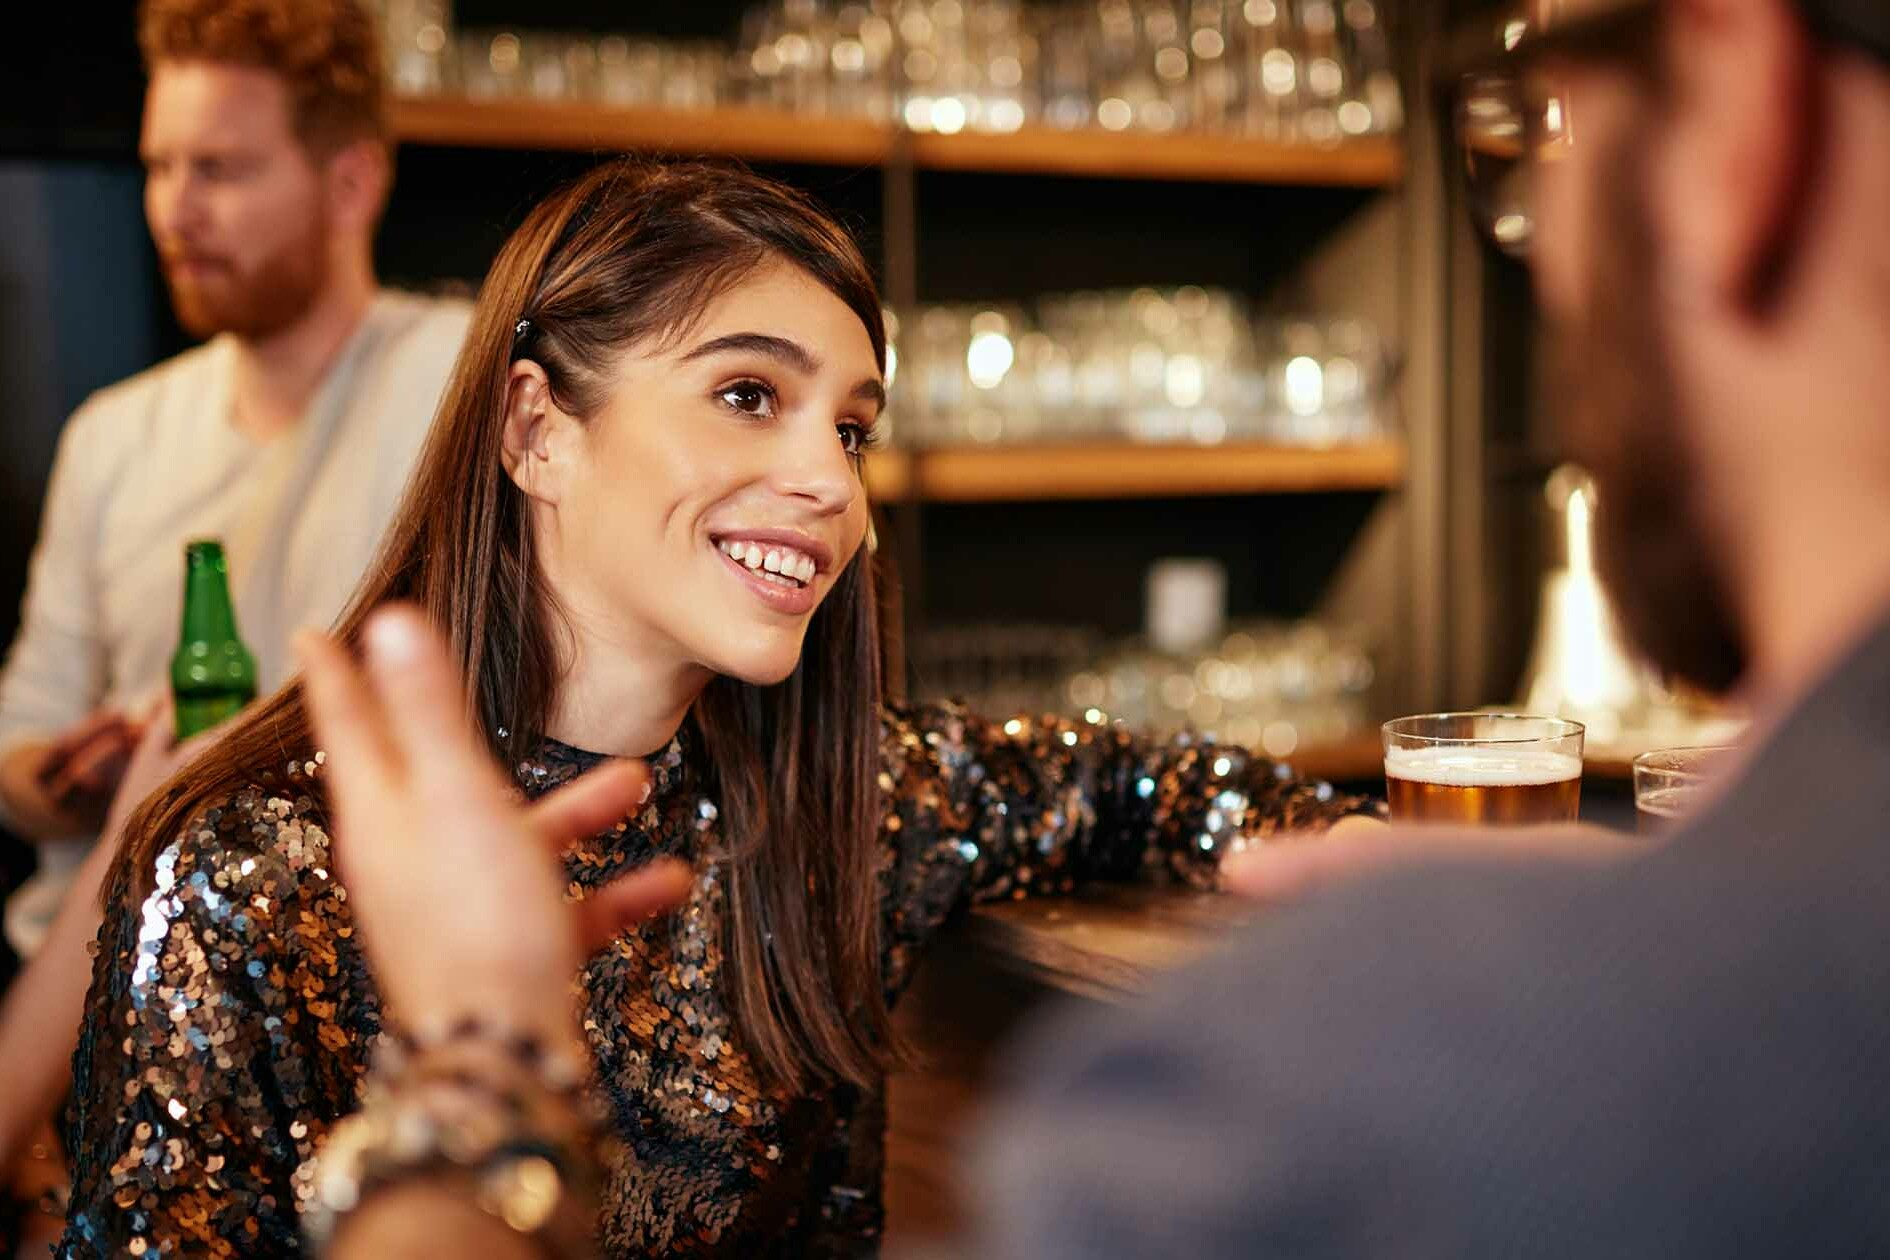 Couple at a Bar - Conversation Starters